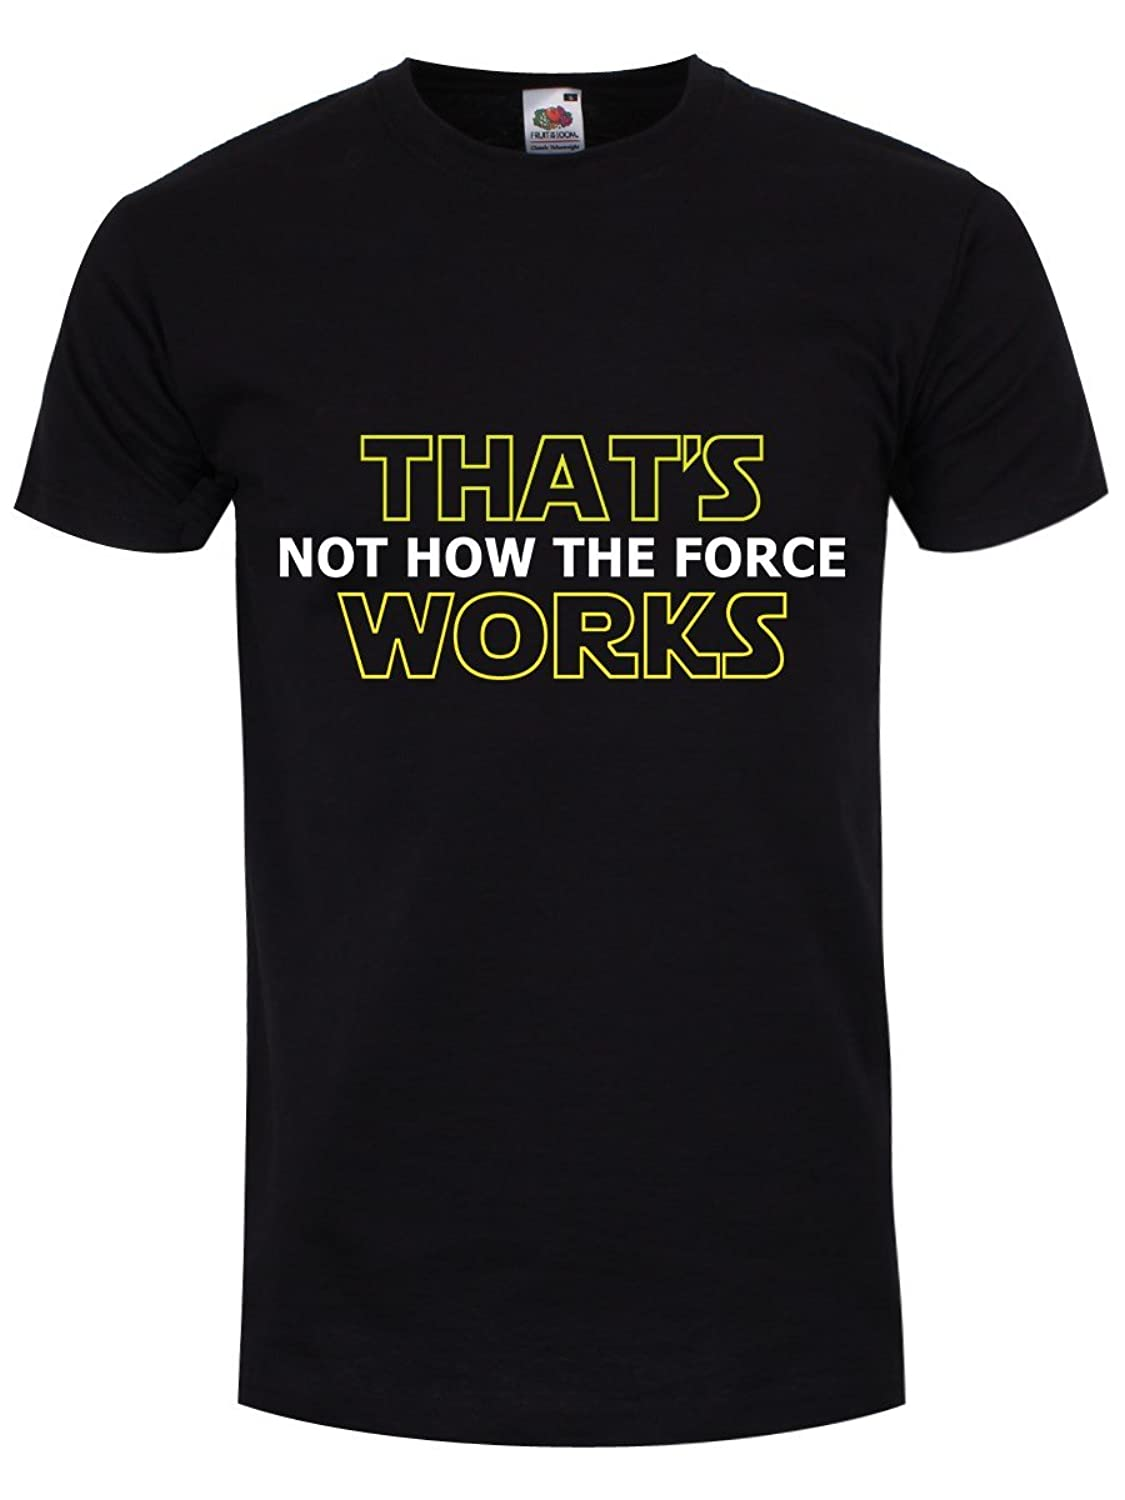 Men39s That39s Not How The Force Works T Shirt Black Is A Diagram Very Easy To Understand Compared Original Clothing